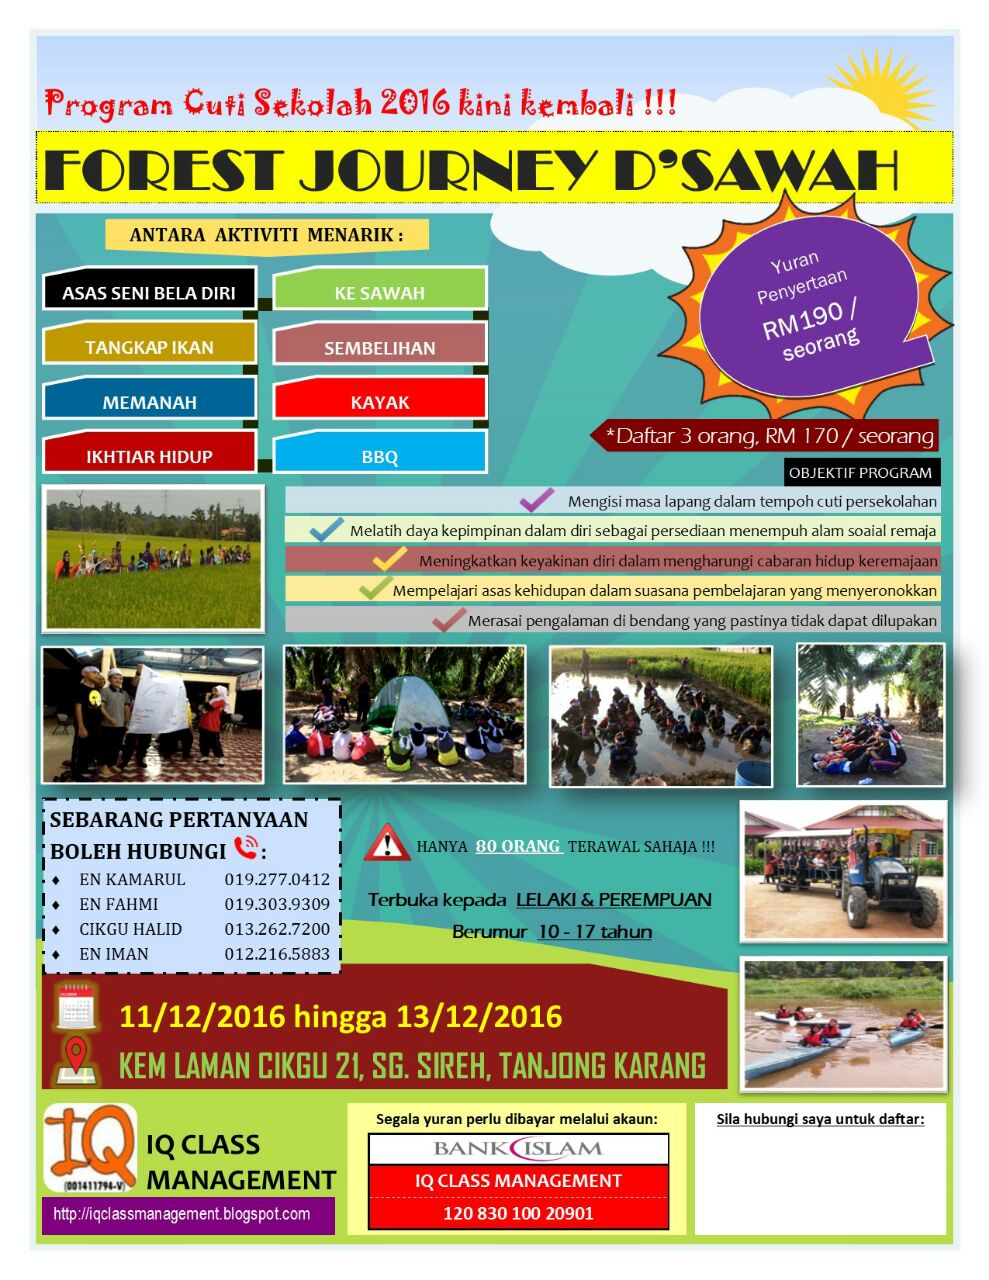 FOREST JOURNEY D'SAWAH